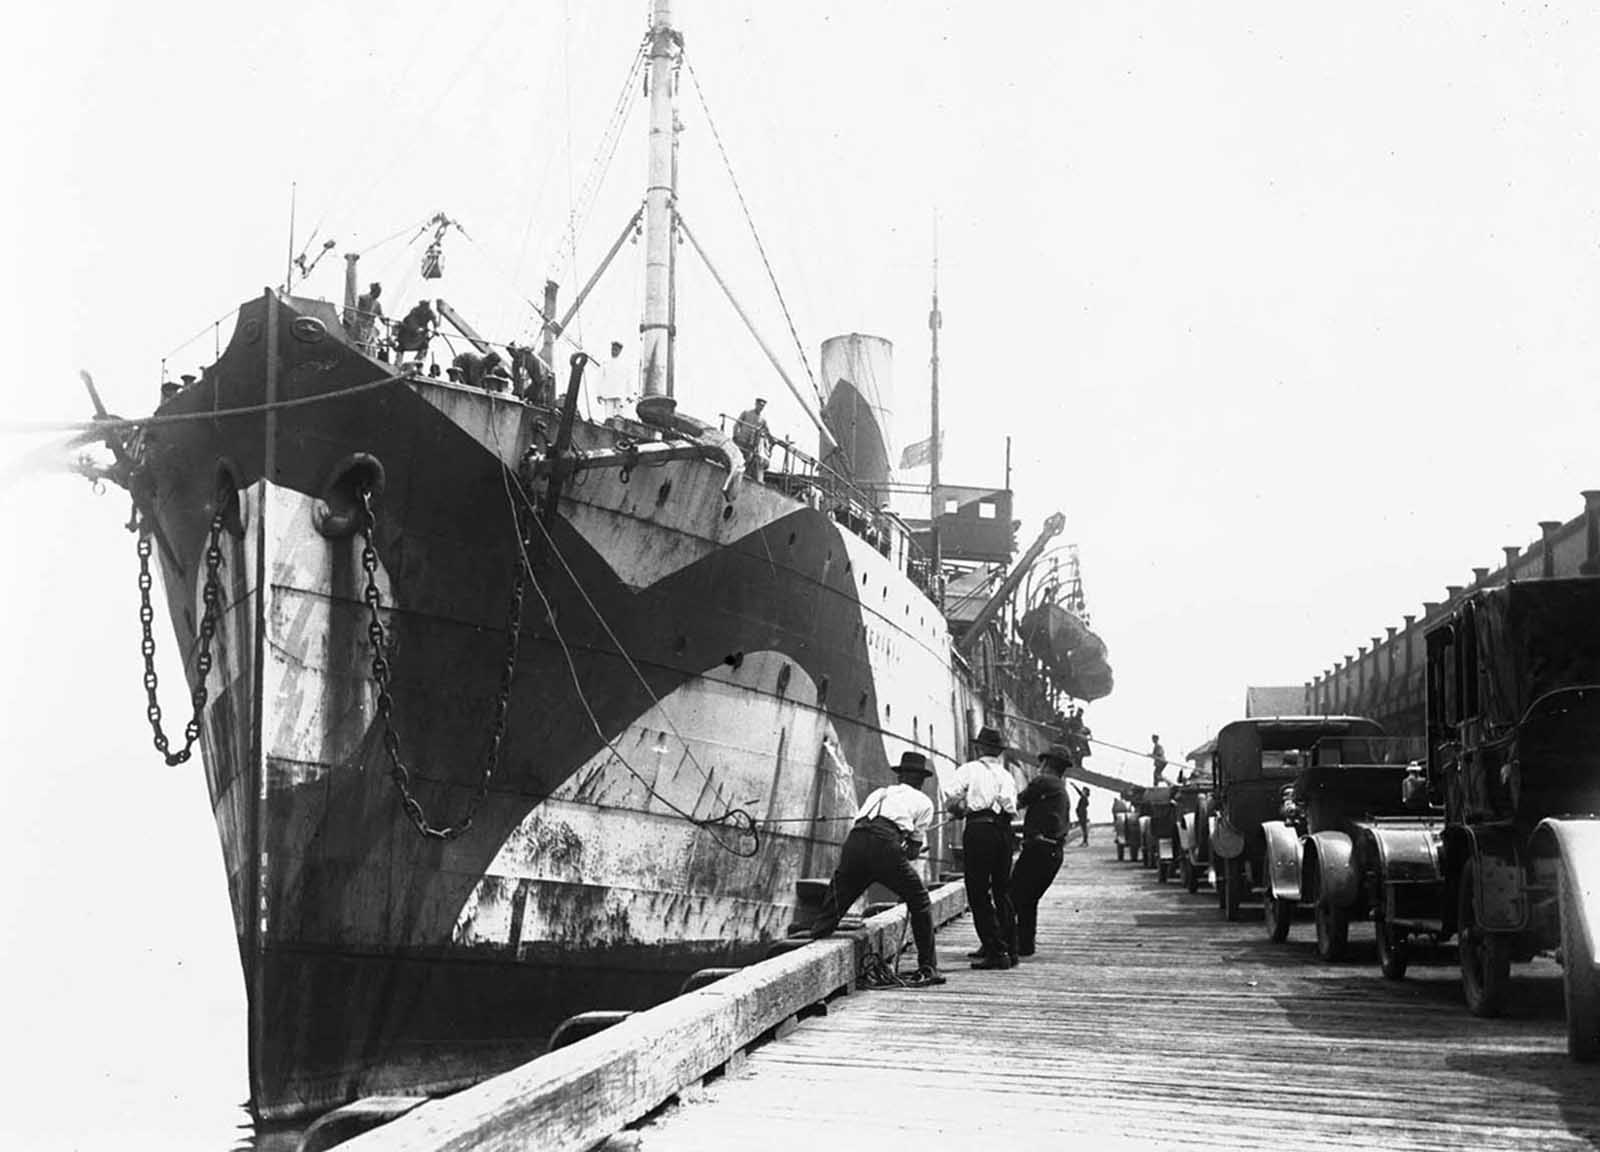 Troop transport Sardinia, in dazzle camouflage, at a wharf during World War I.